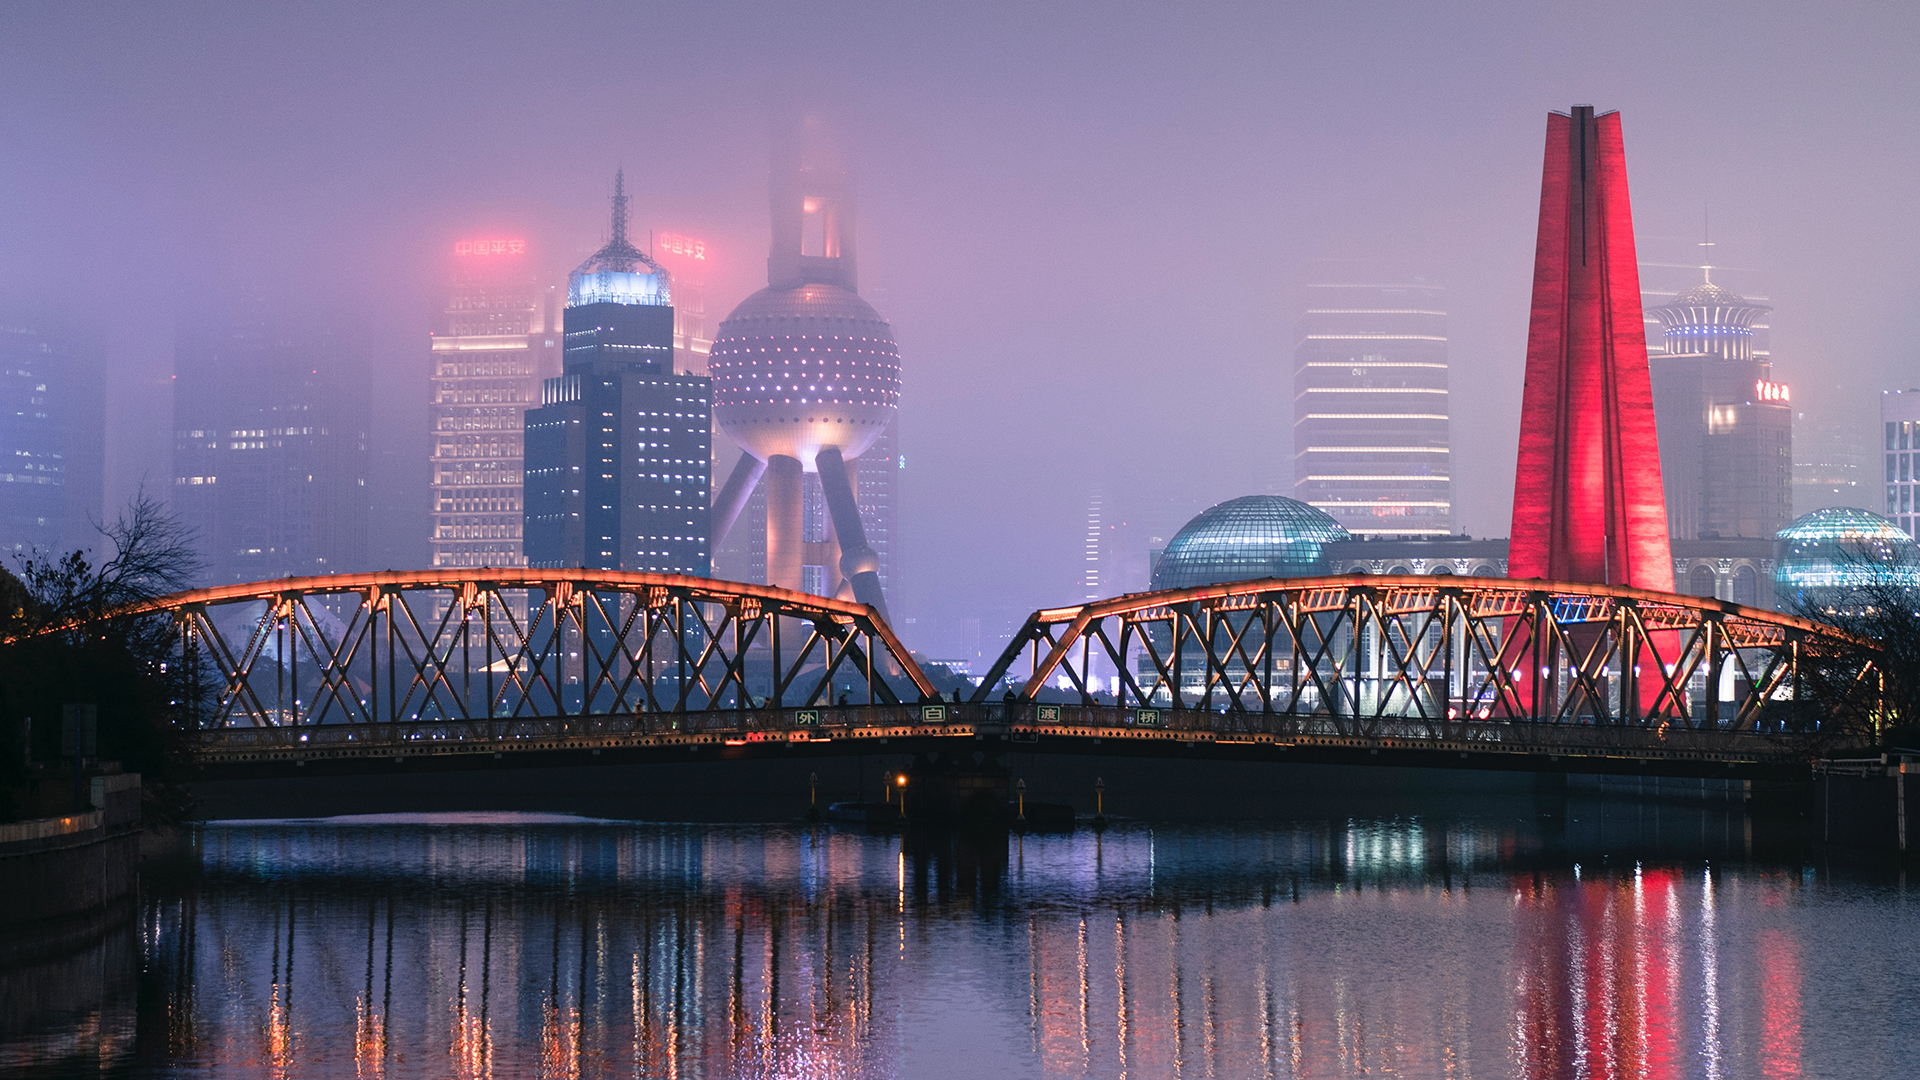 General 1920x1080 bridge mist lights Shanghai cityscape China water reflection architecture night building city